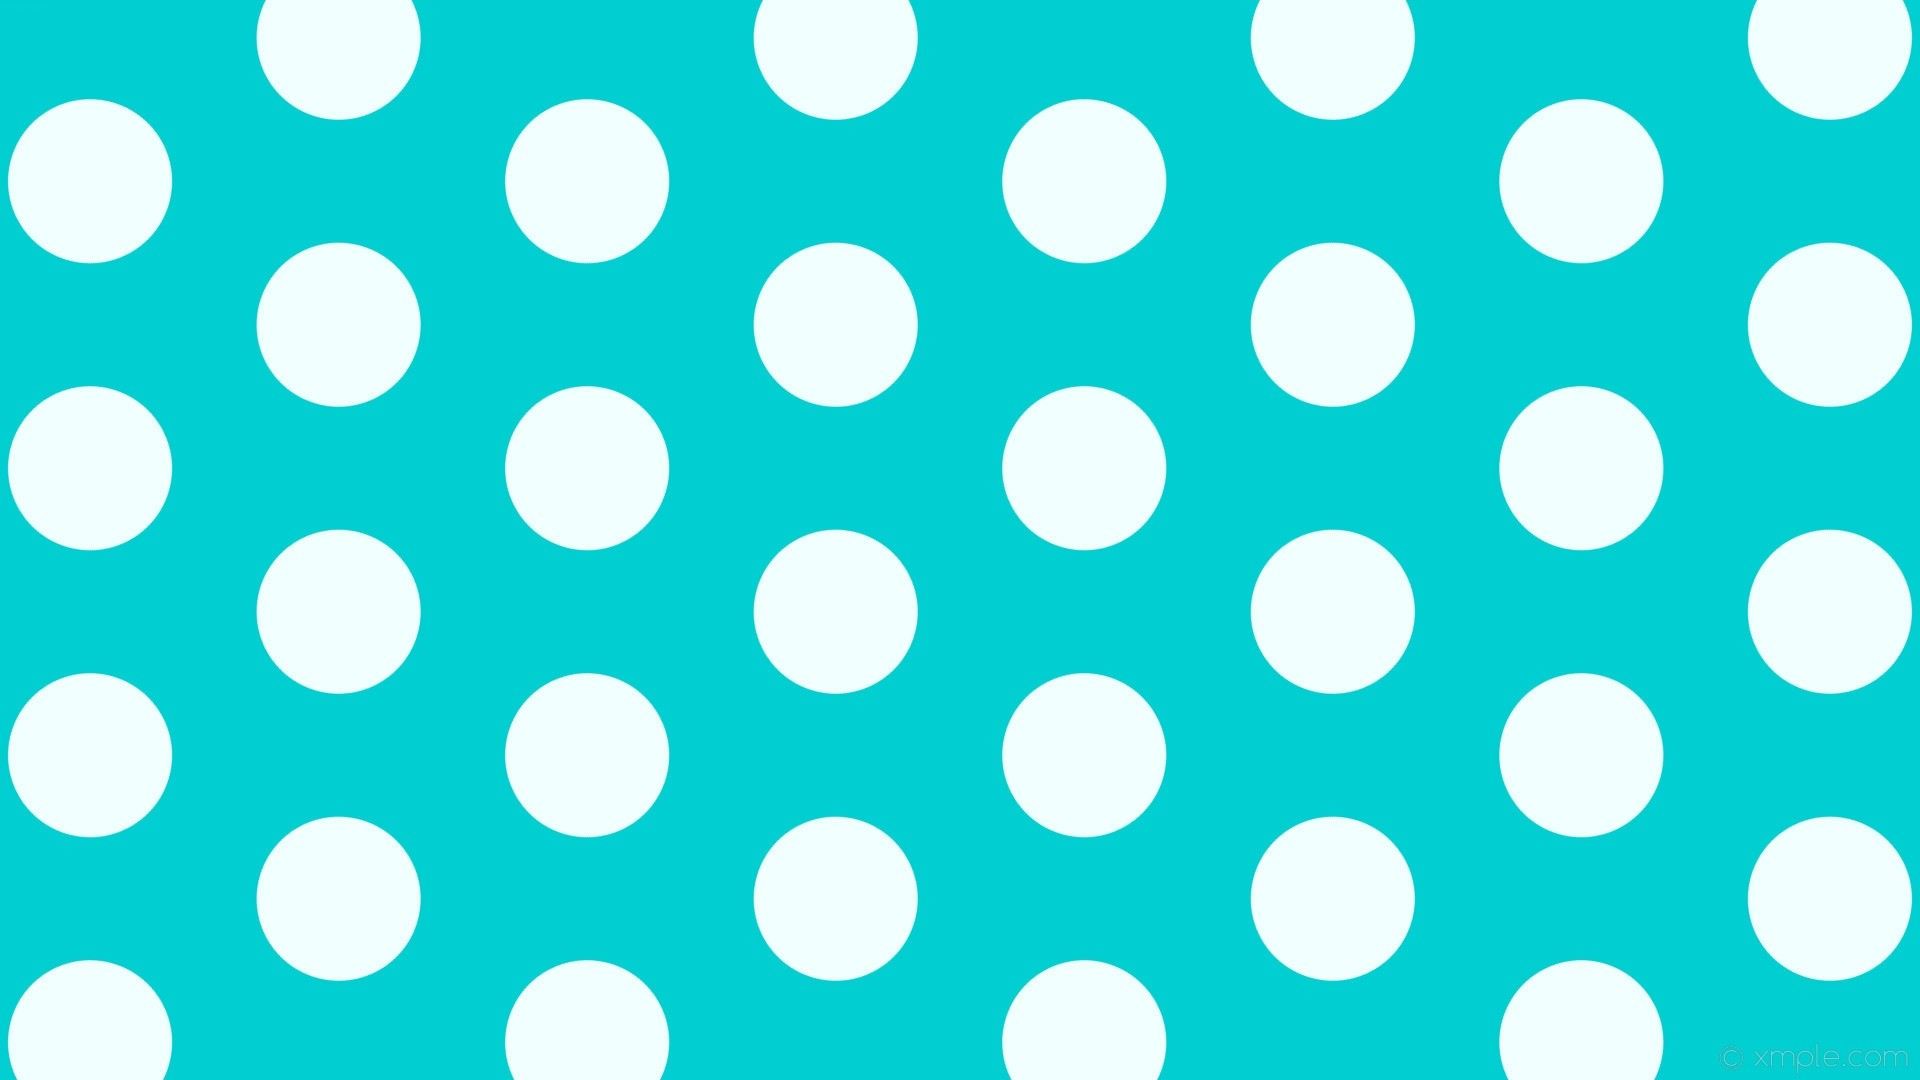 Polka Dot High Quality